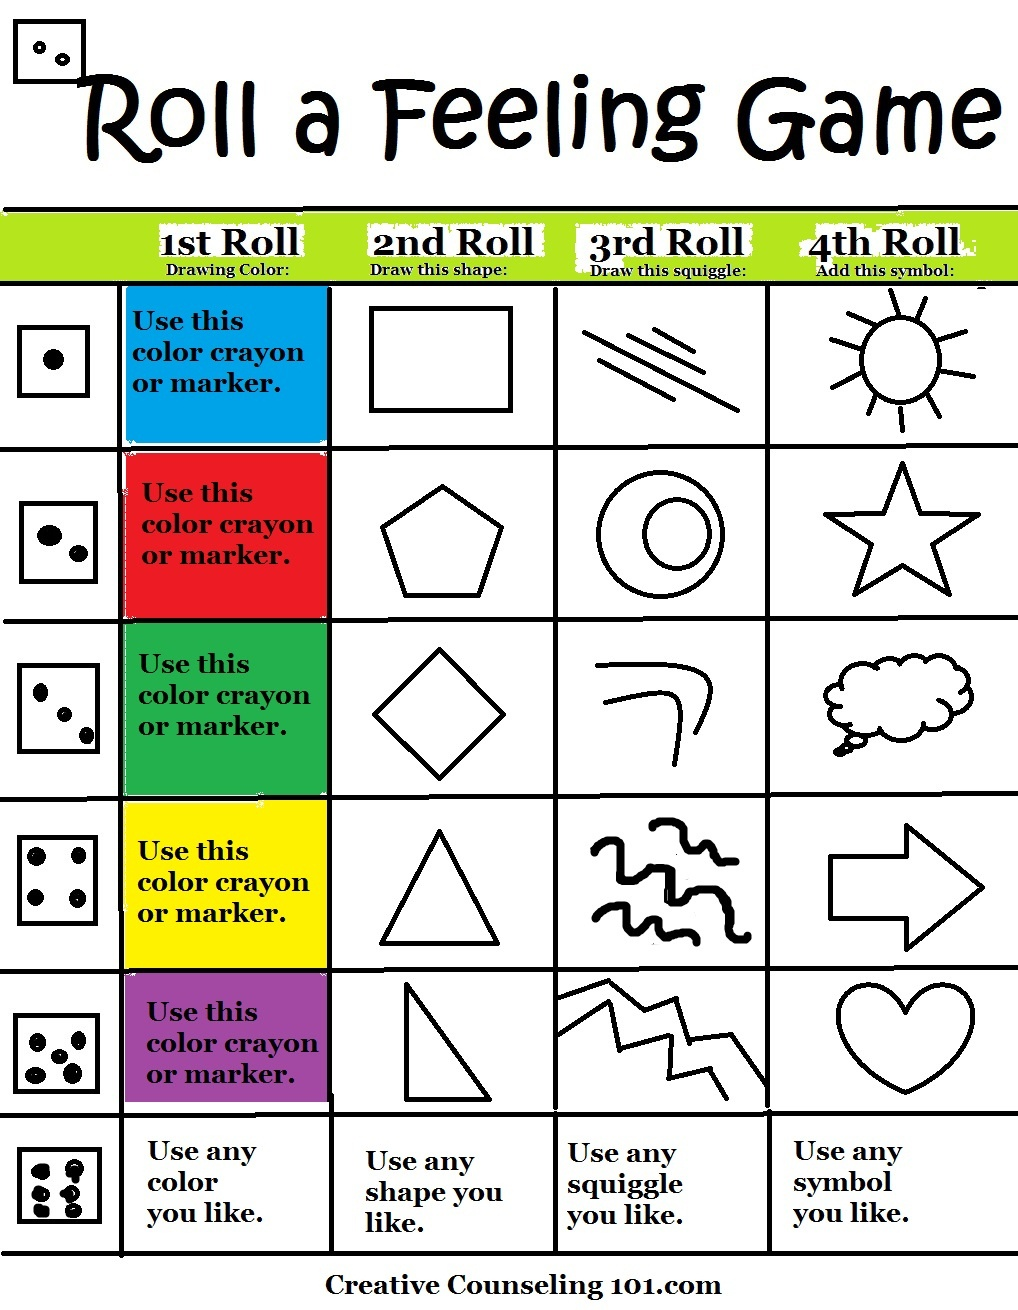 Beyond Art Therapy Roll-A-Feelings Game - Free Printable Therapy Worksheets